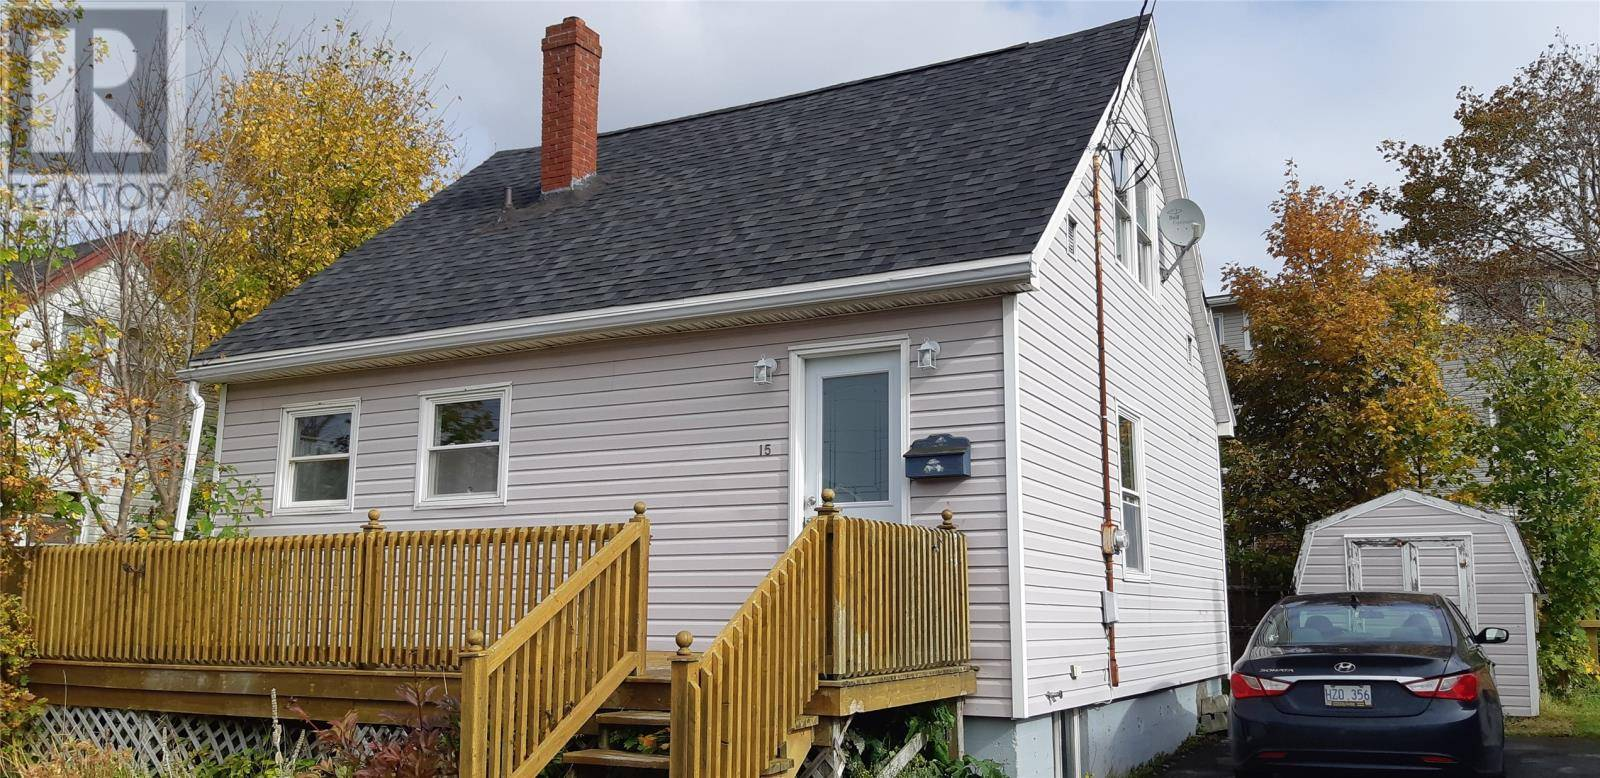 House for sale at 15 Mcnaughton Pl St. John's Newfoundland - MLS: 1198897